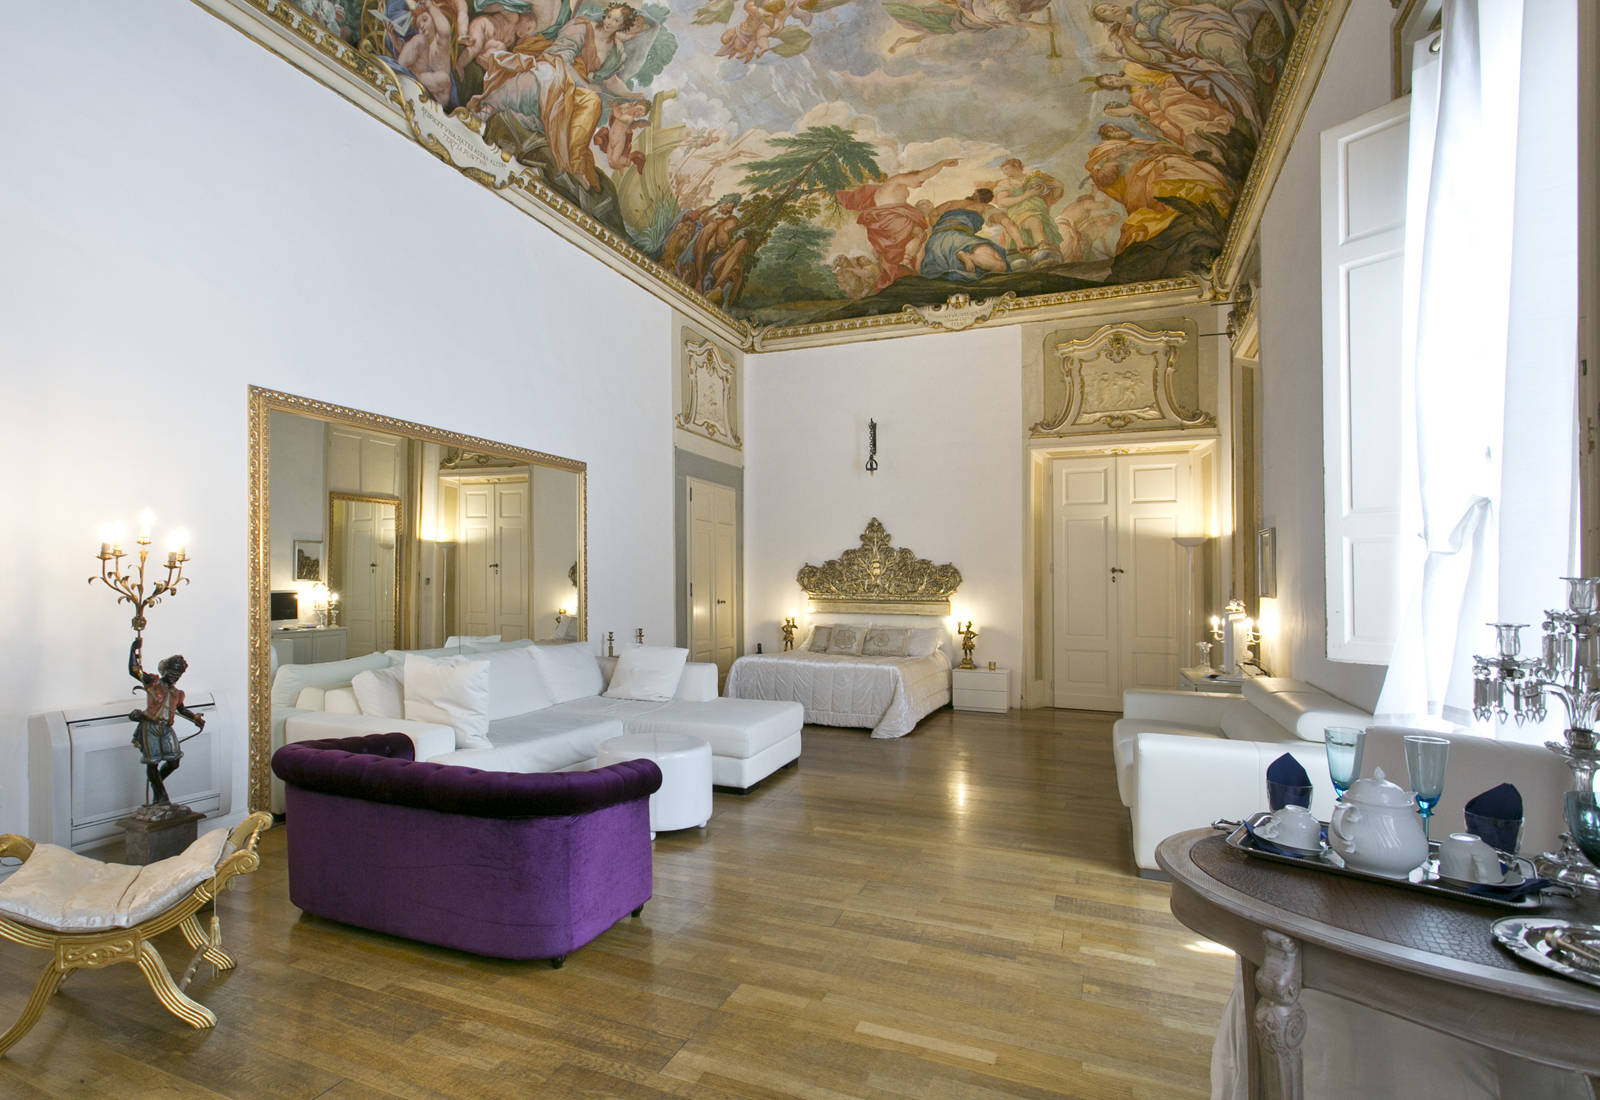 boutique hotel in vendita firenze